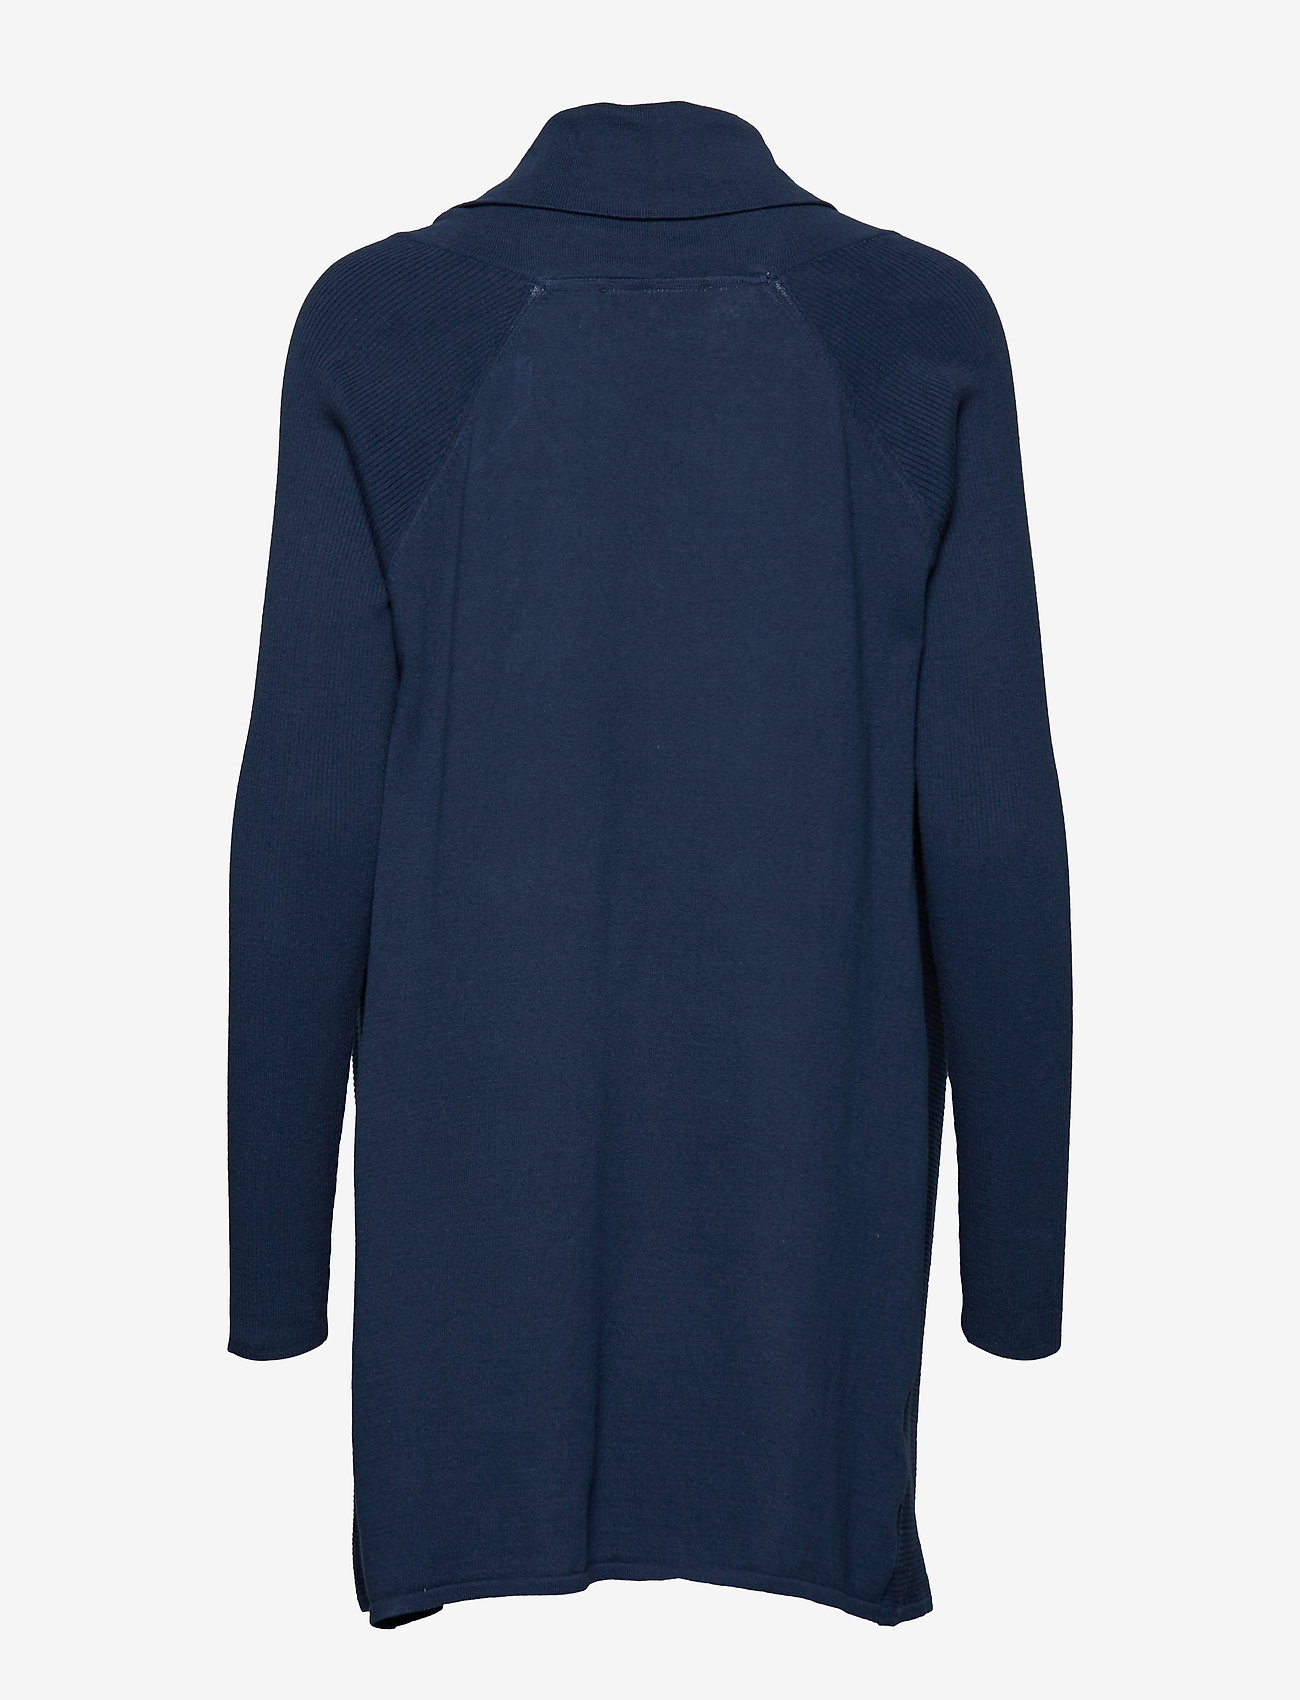 Noa Noa - Cardigan - vesten - dress blues - 1